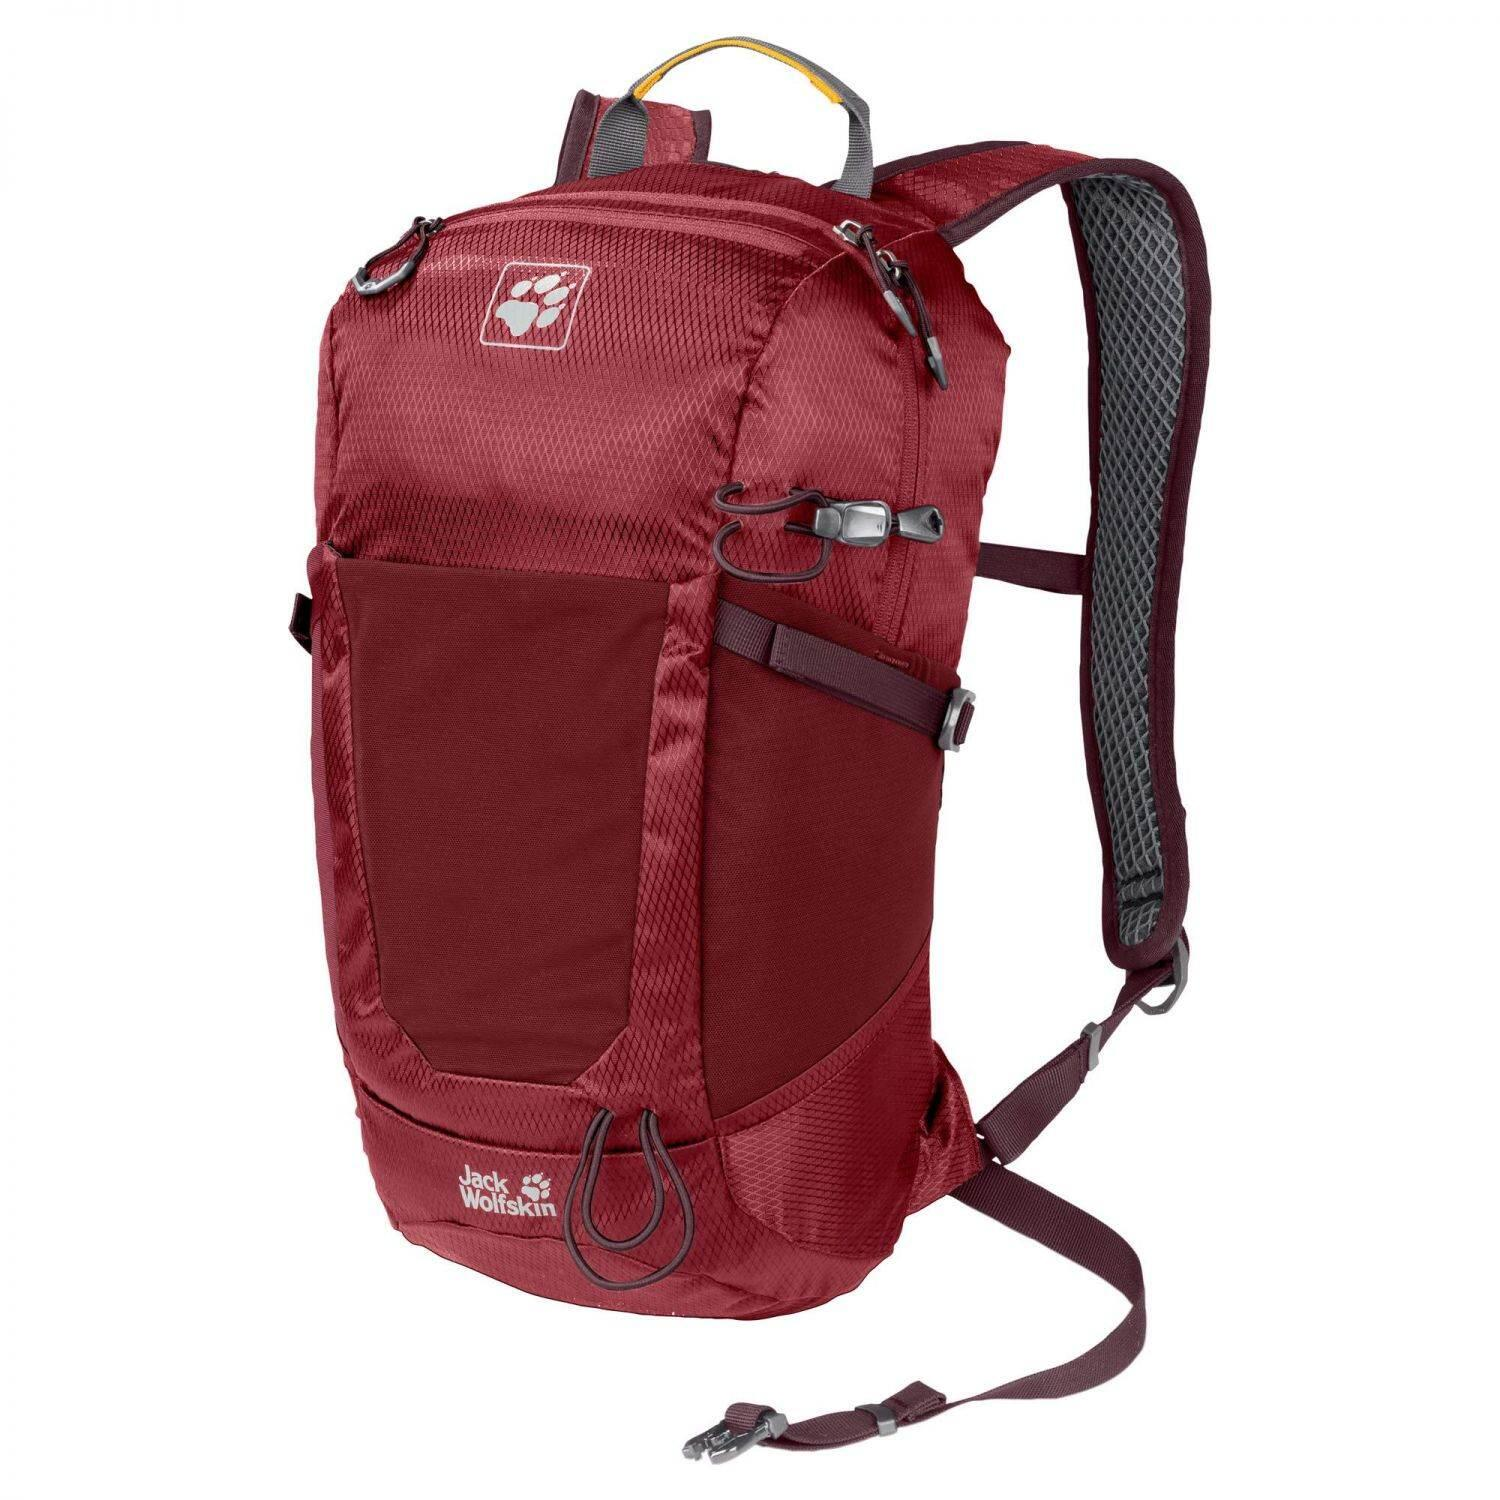 Jack Wolfskin Kingston 16 Pack Tagesrucksack